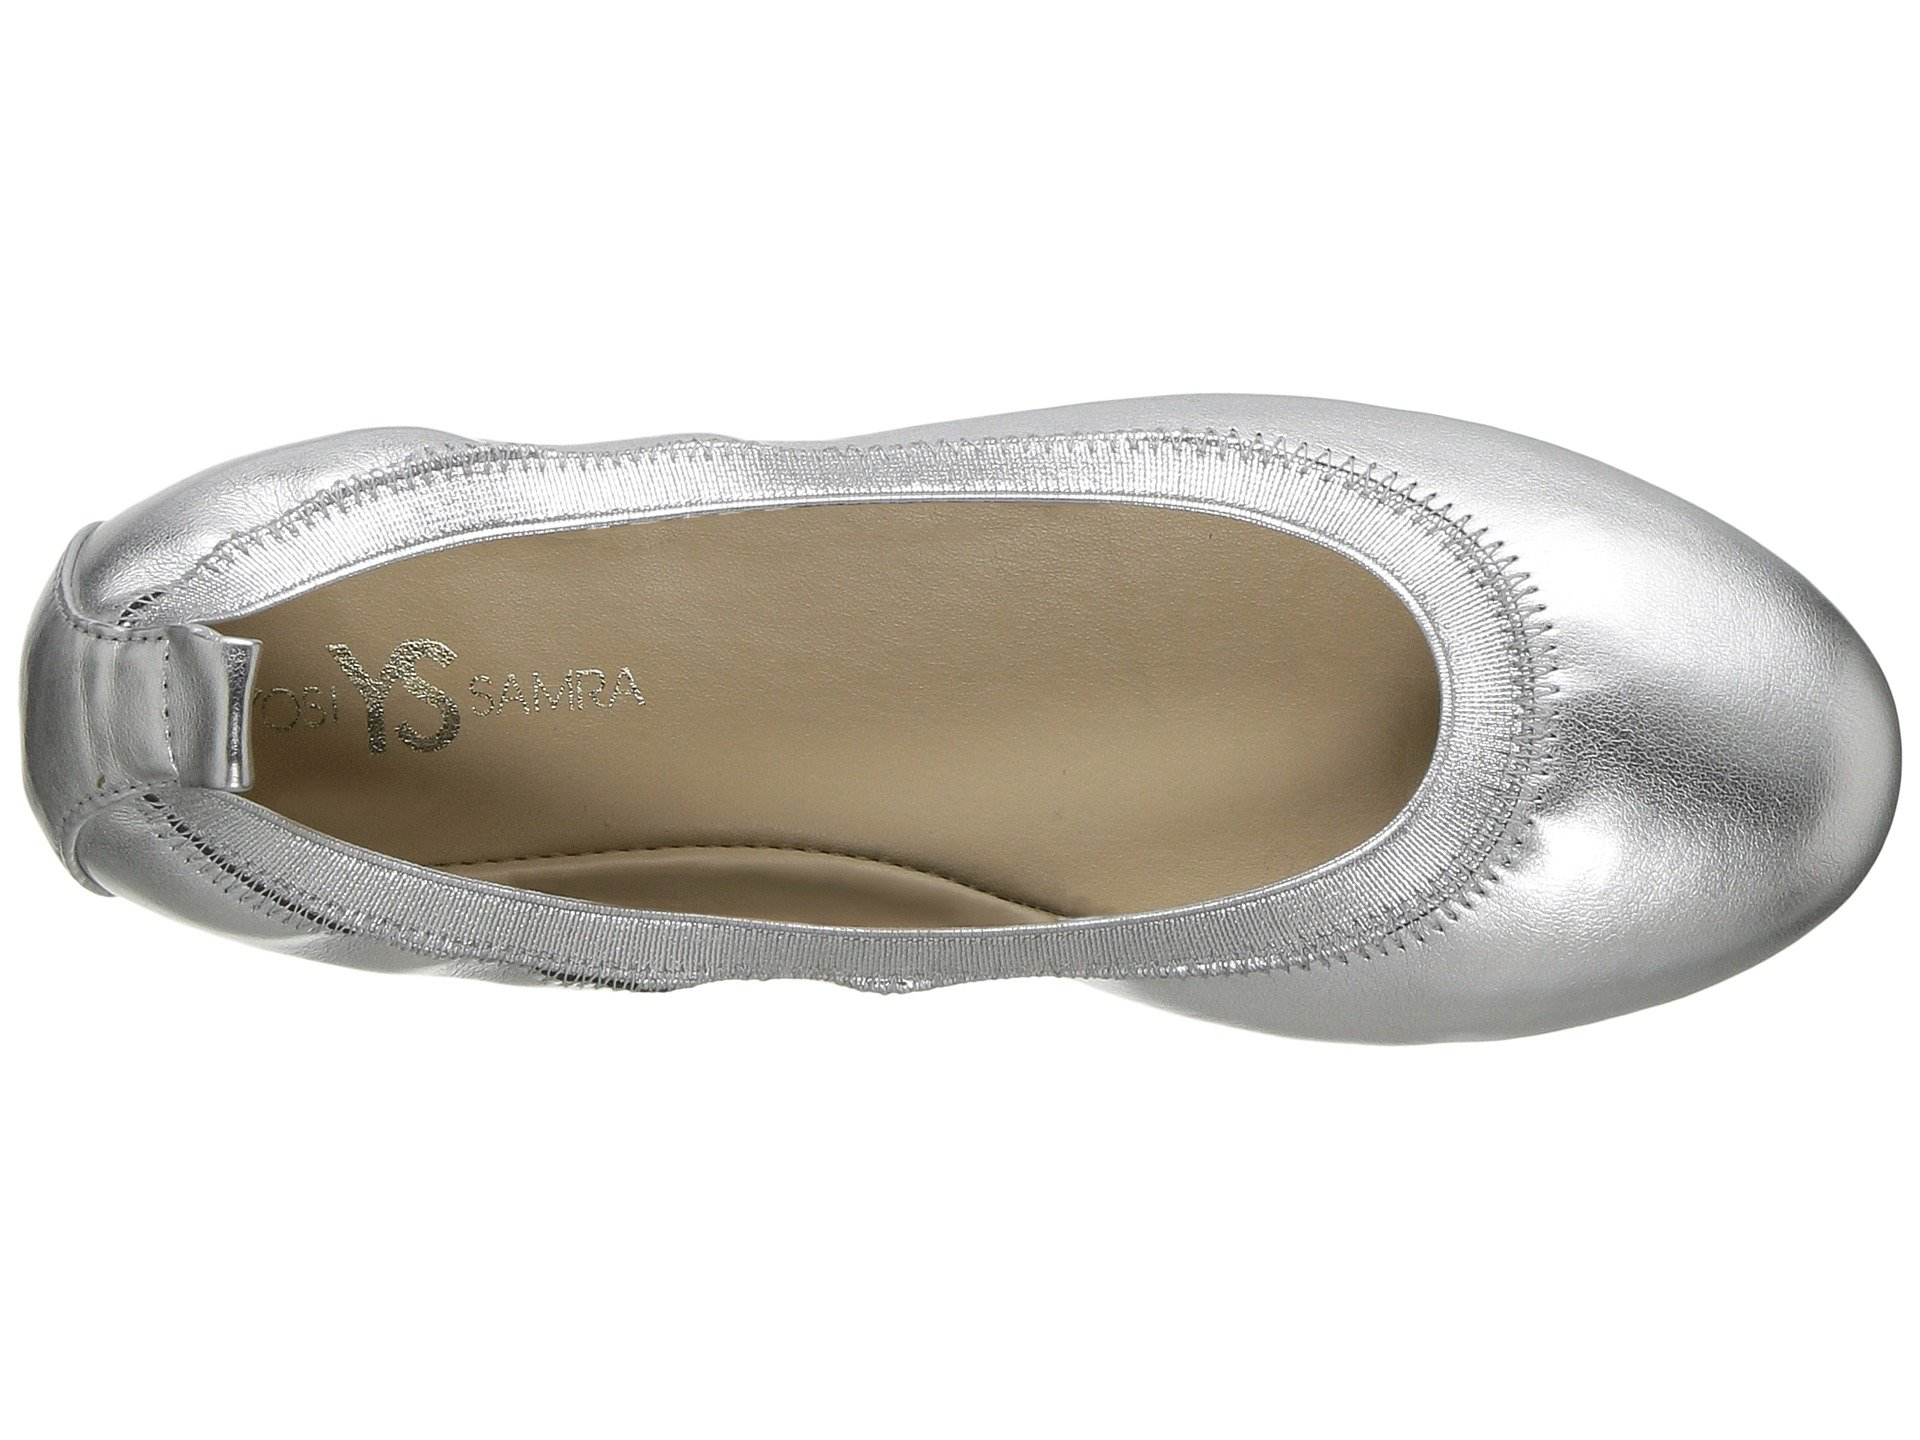 yosi samra kids miss samara metallic ballet flat (toddler/little kid/big kid)